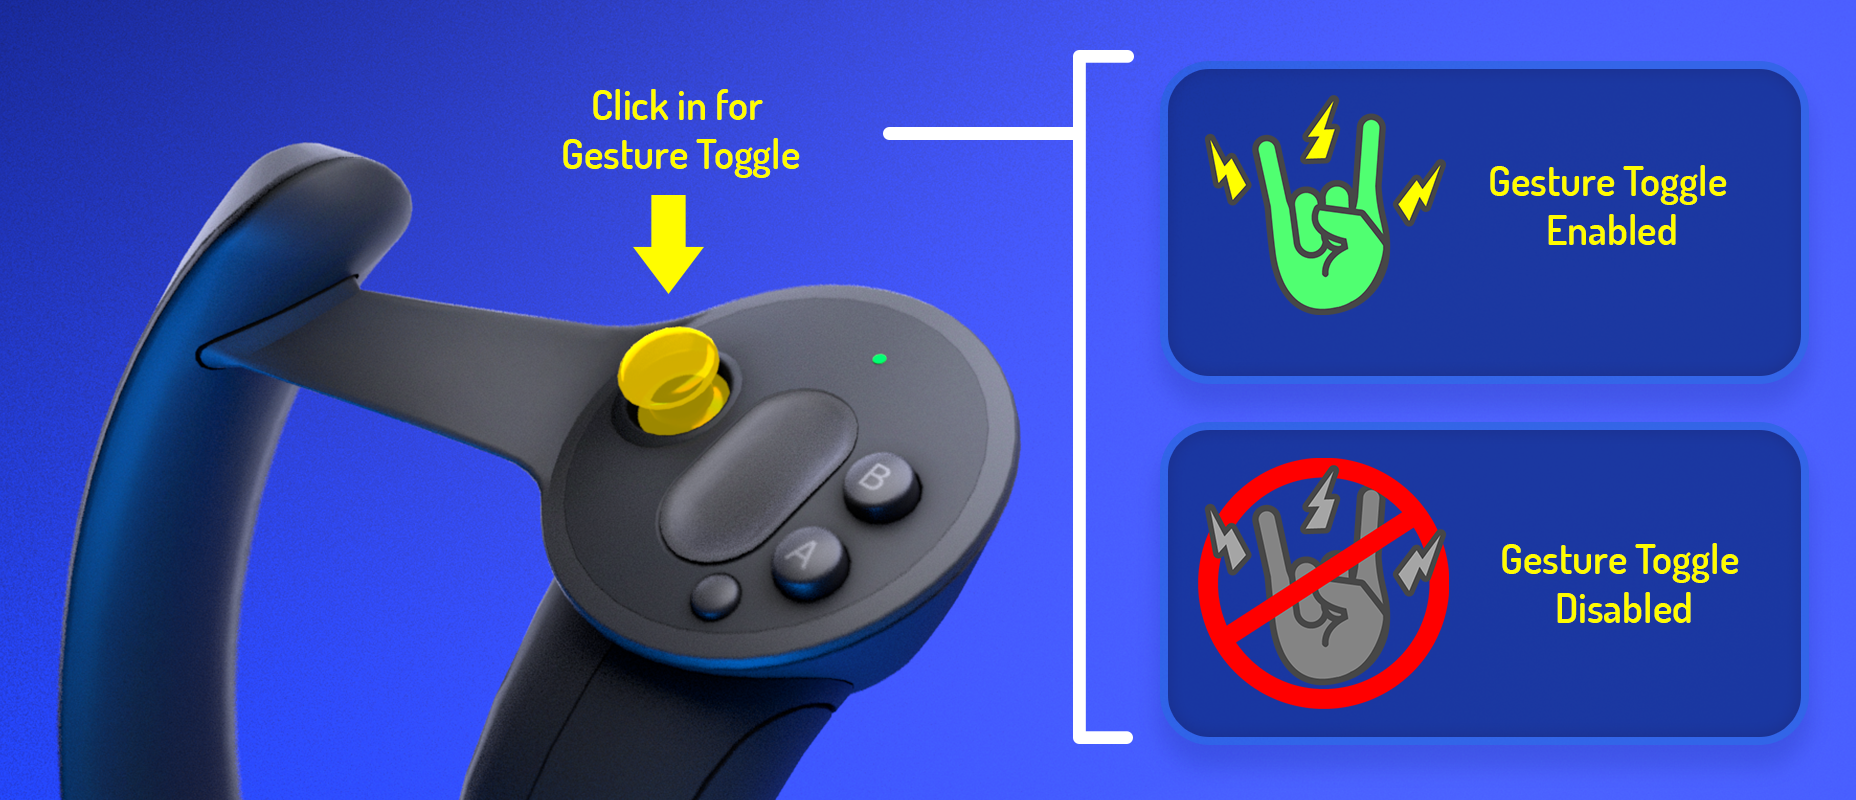 VRChat Valve Index Support and the Gesture Toggle System